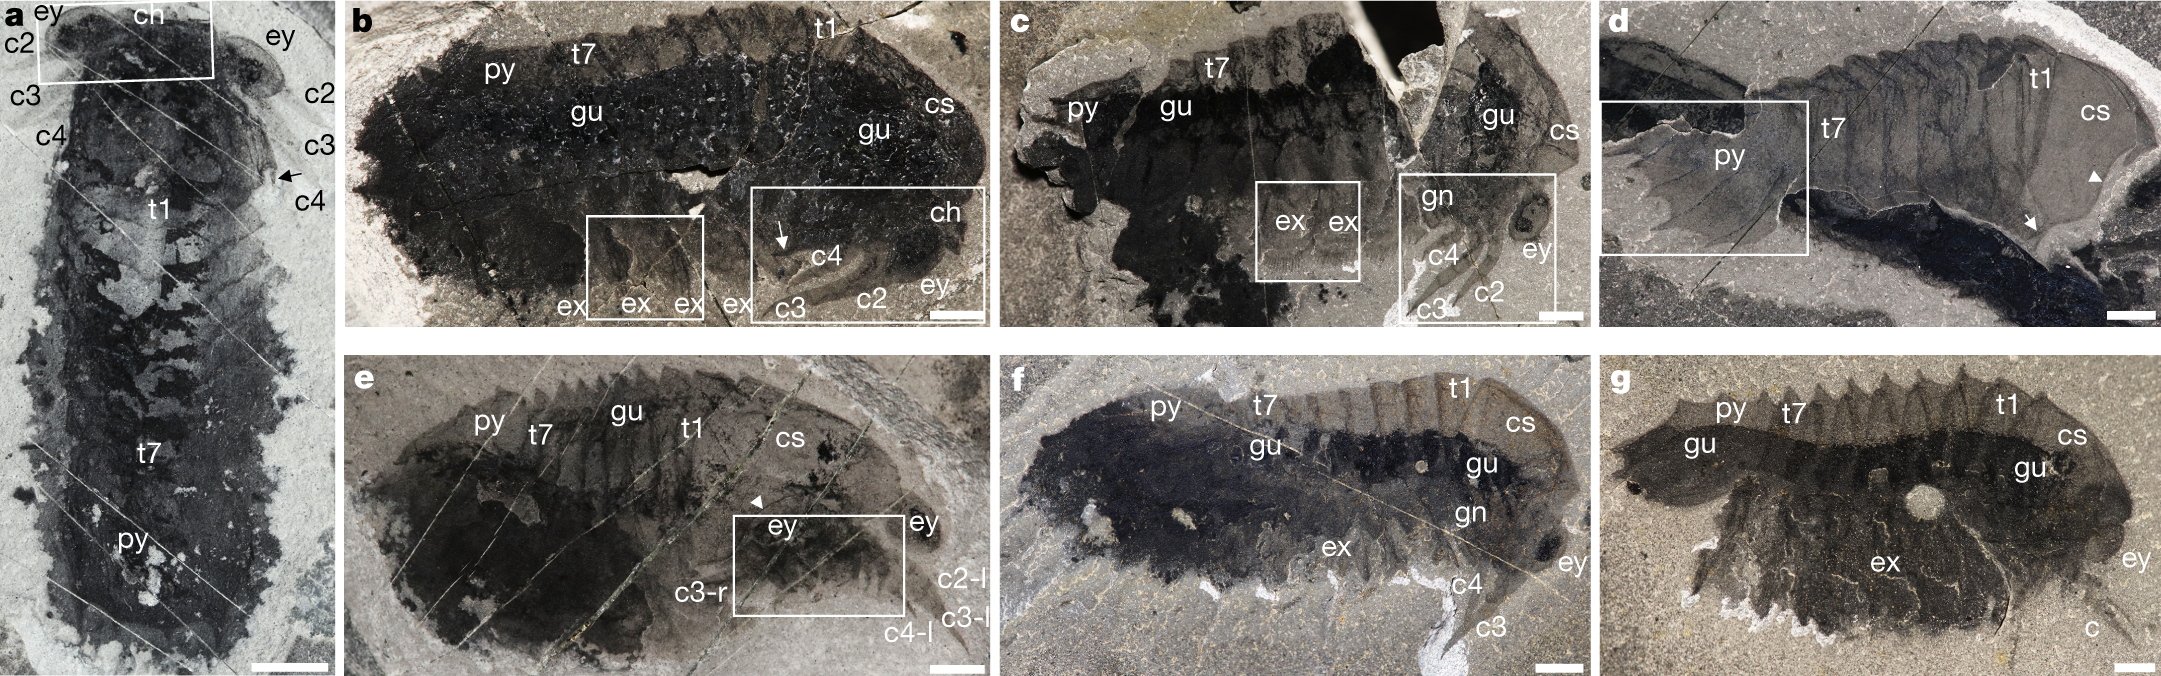 A middle Cambrian arthropod with chelicerae and proto-book gills